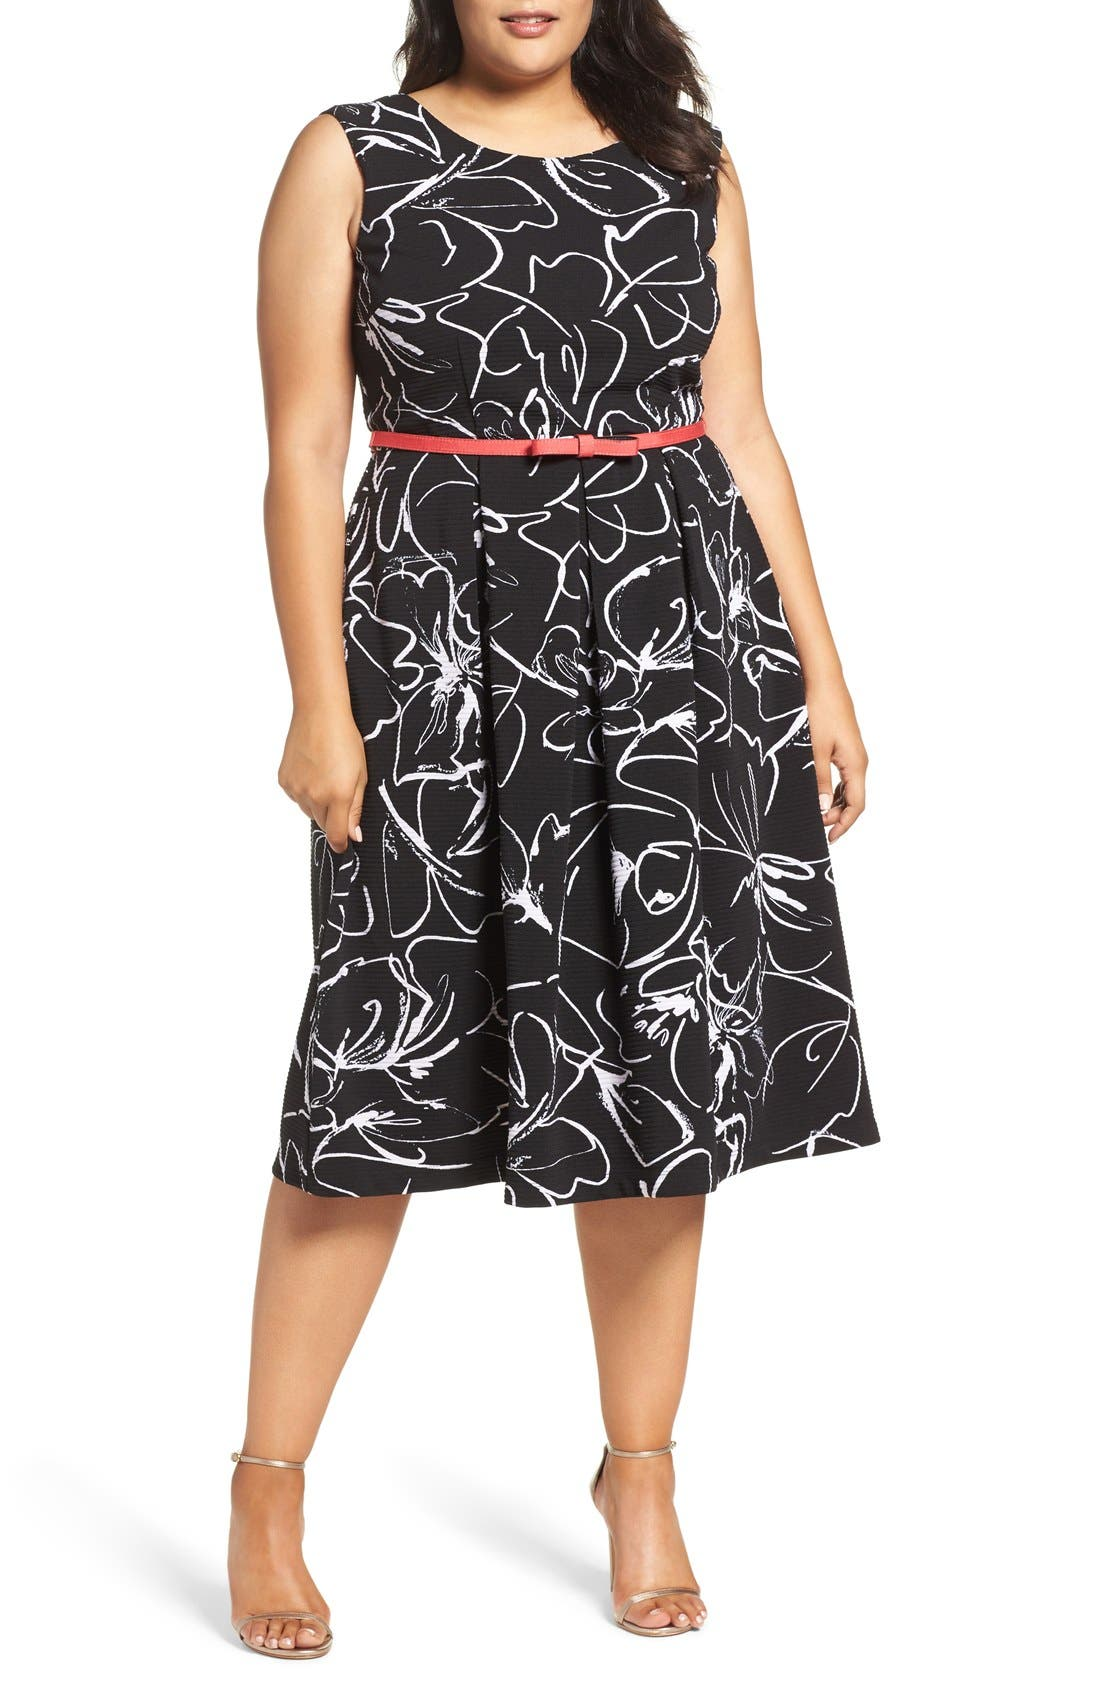 Main Image - Gabby Skye Print Fit & Flare Dress (Plus Size)